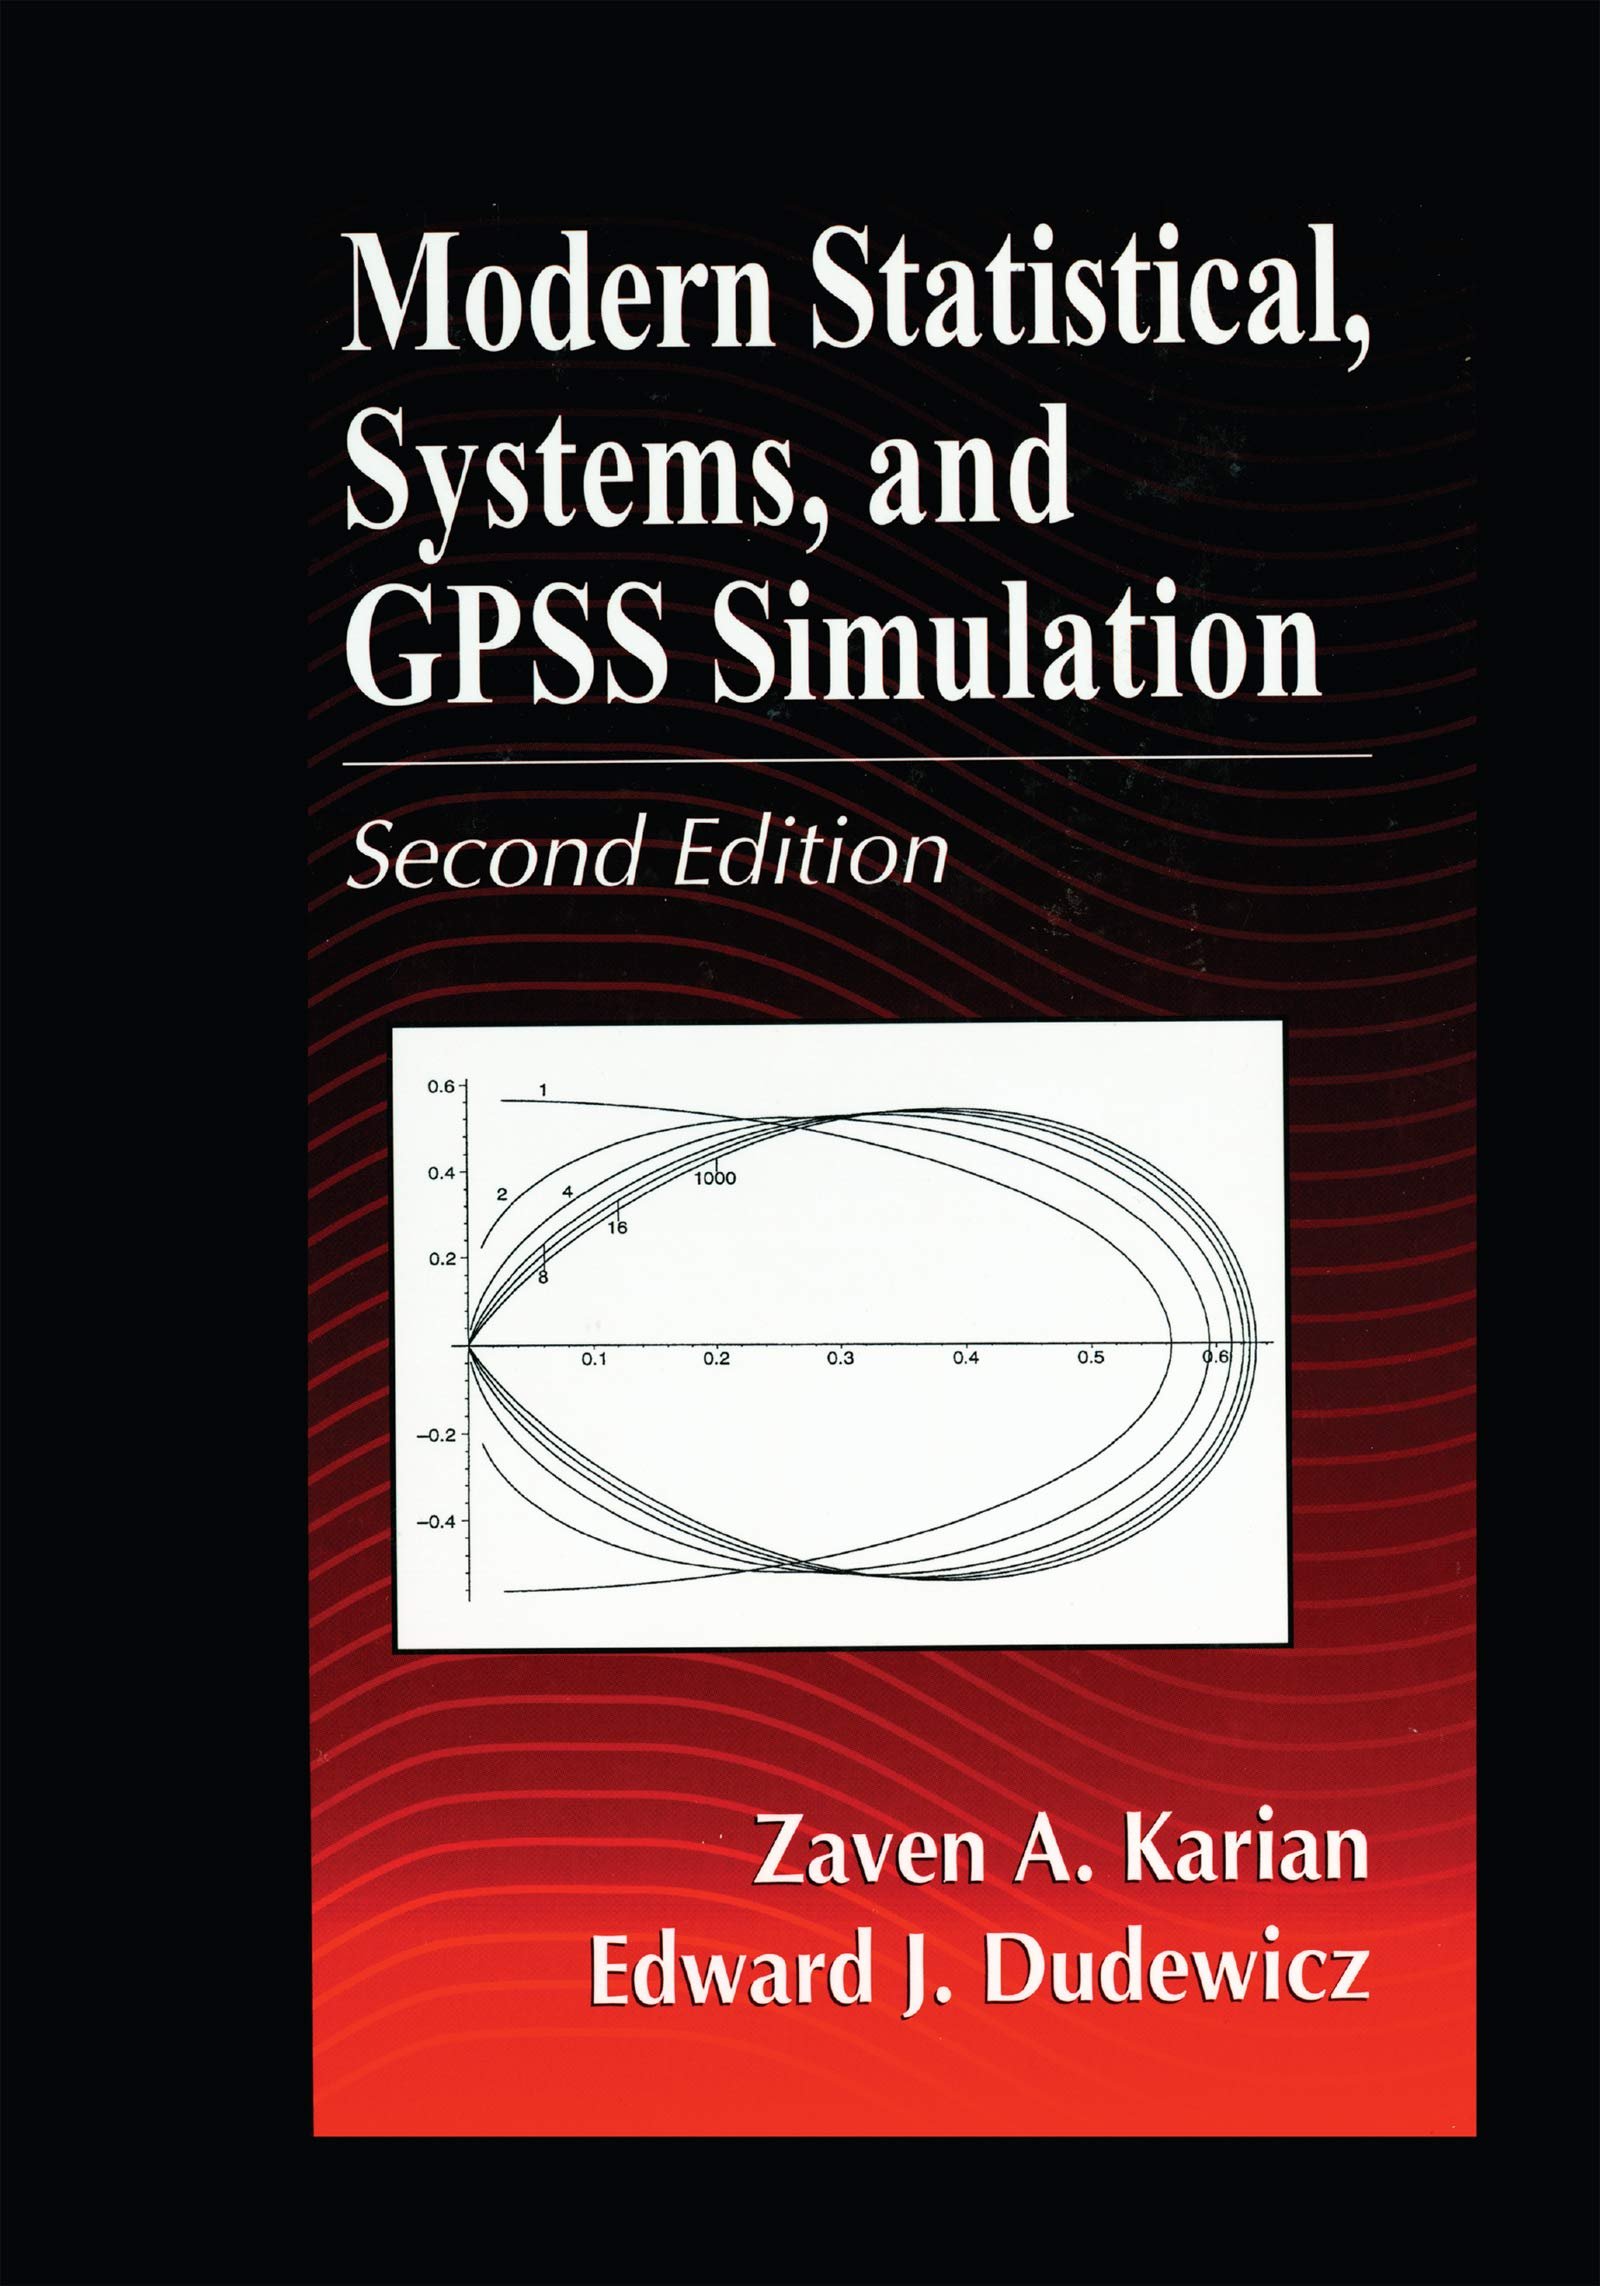 Modern Statistical, Systems, and GPSS Simulation, Second Edition